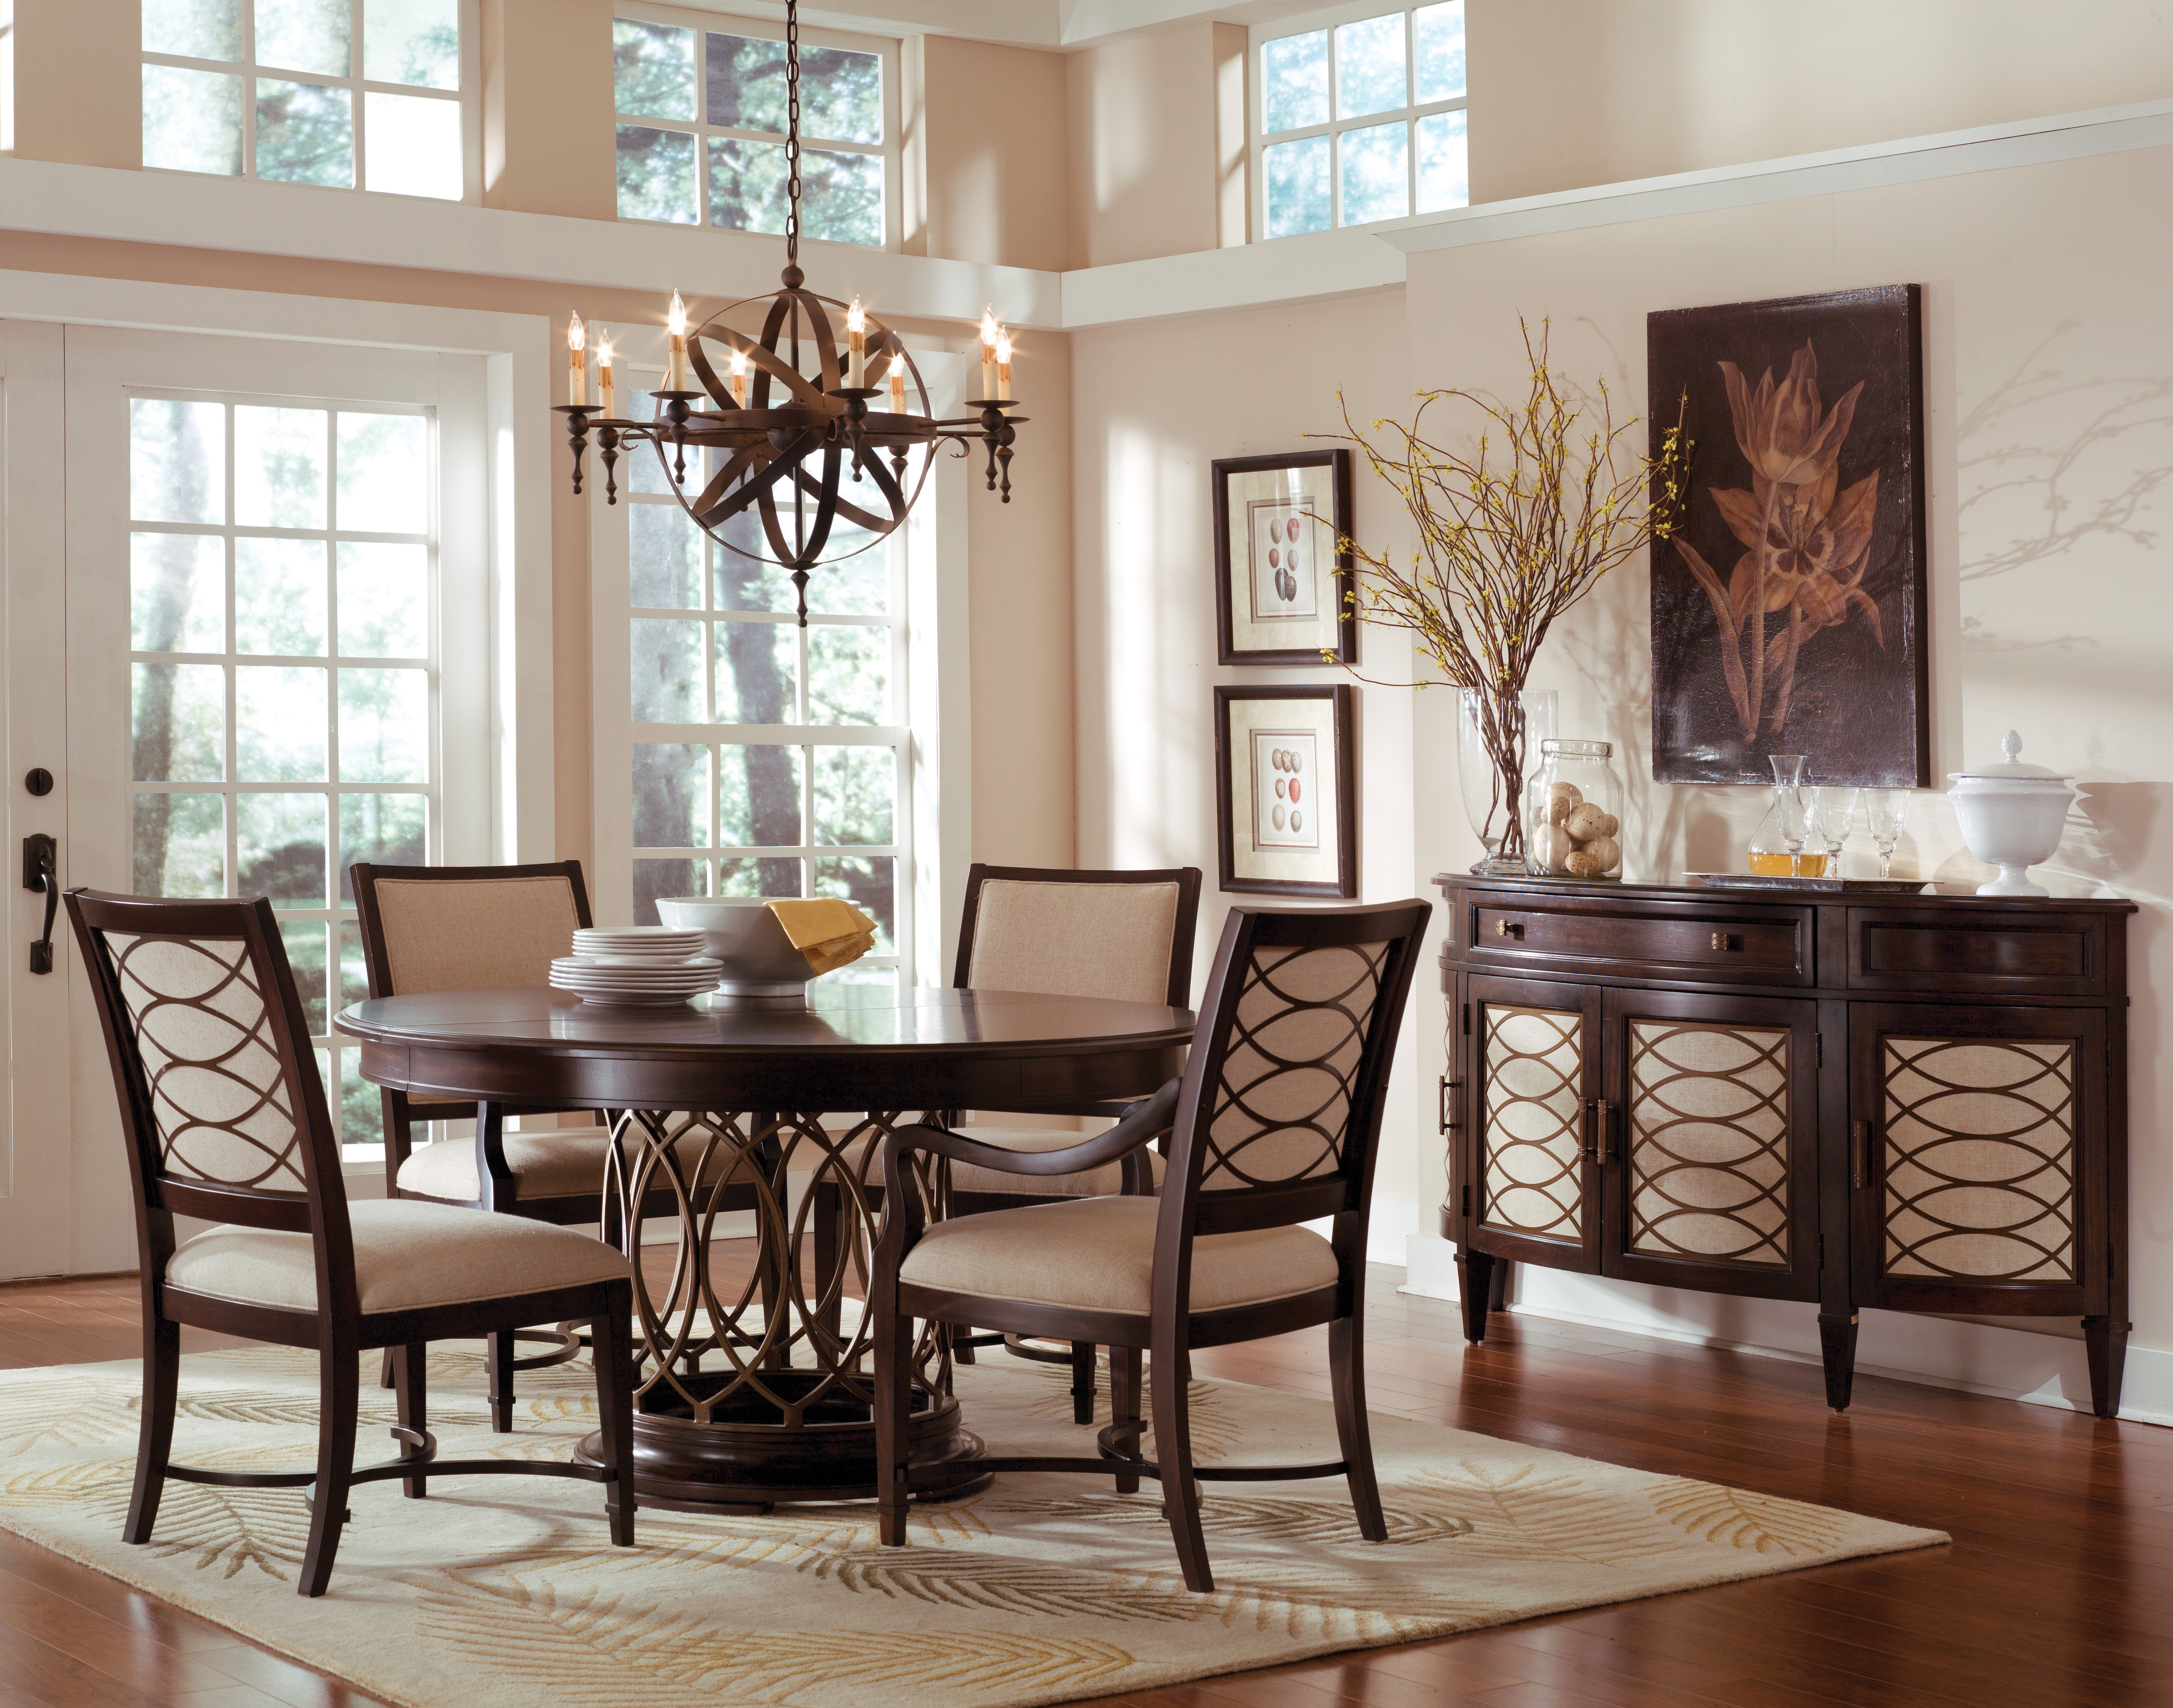 Decorating Nice Dining Table Set 6 Seater And House Beautiful Rooms In Recent Candice Ii Round Dining Tables (View 21 of 25)